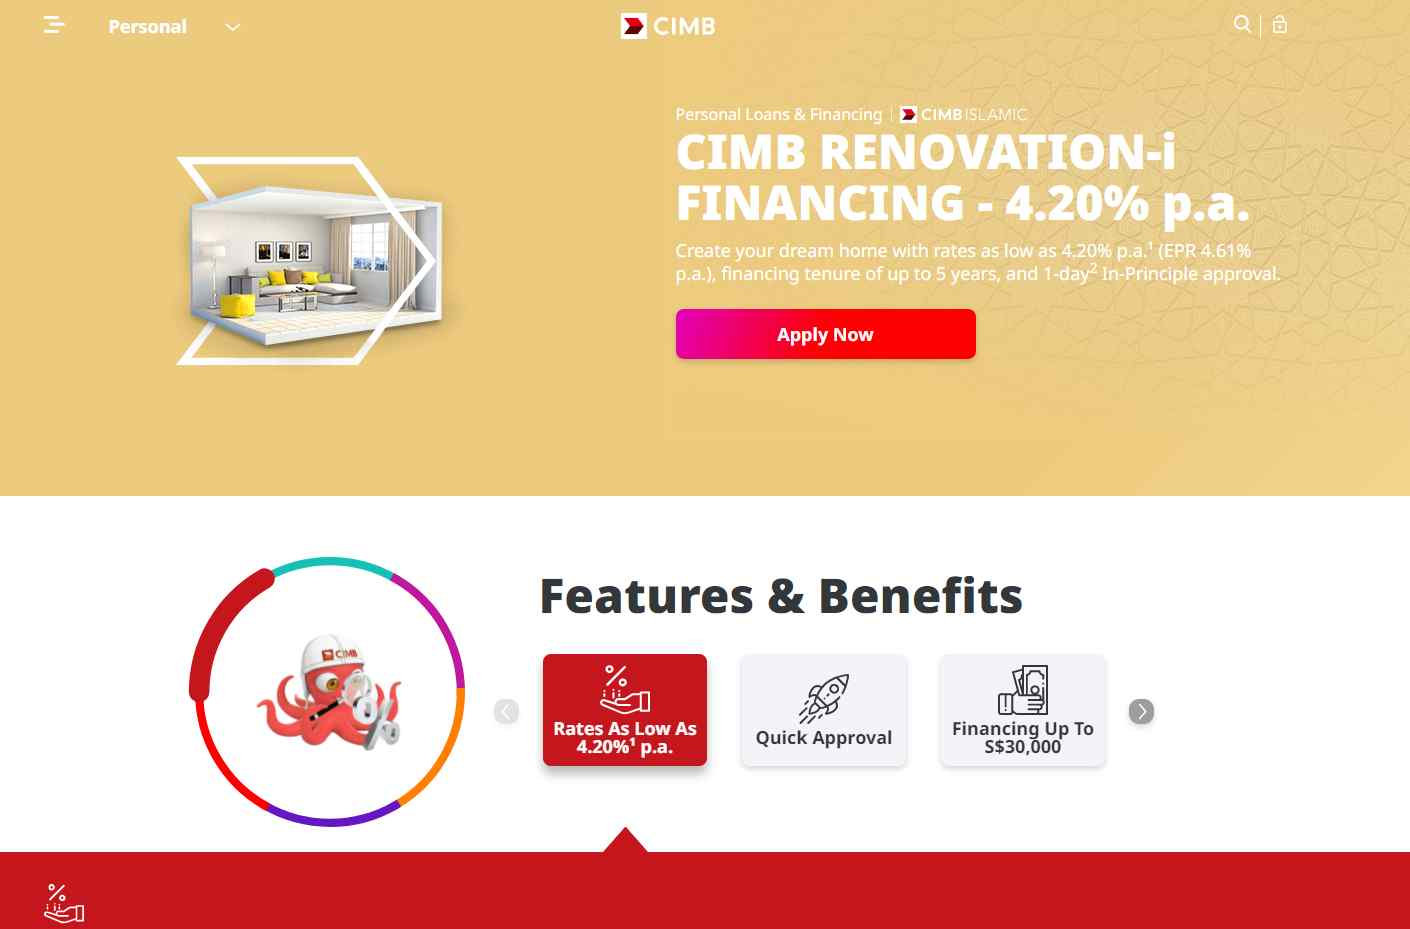 cimb Top Renovation Loan Providers in Singapore